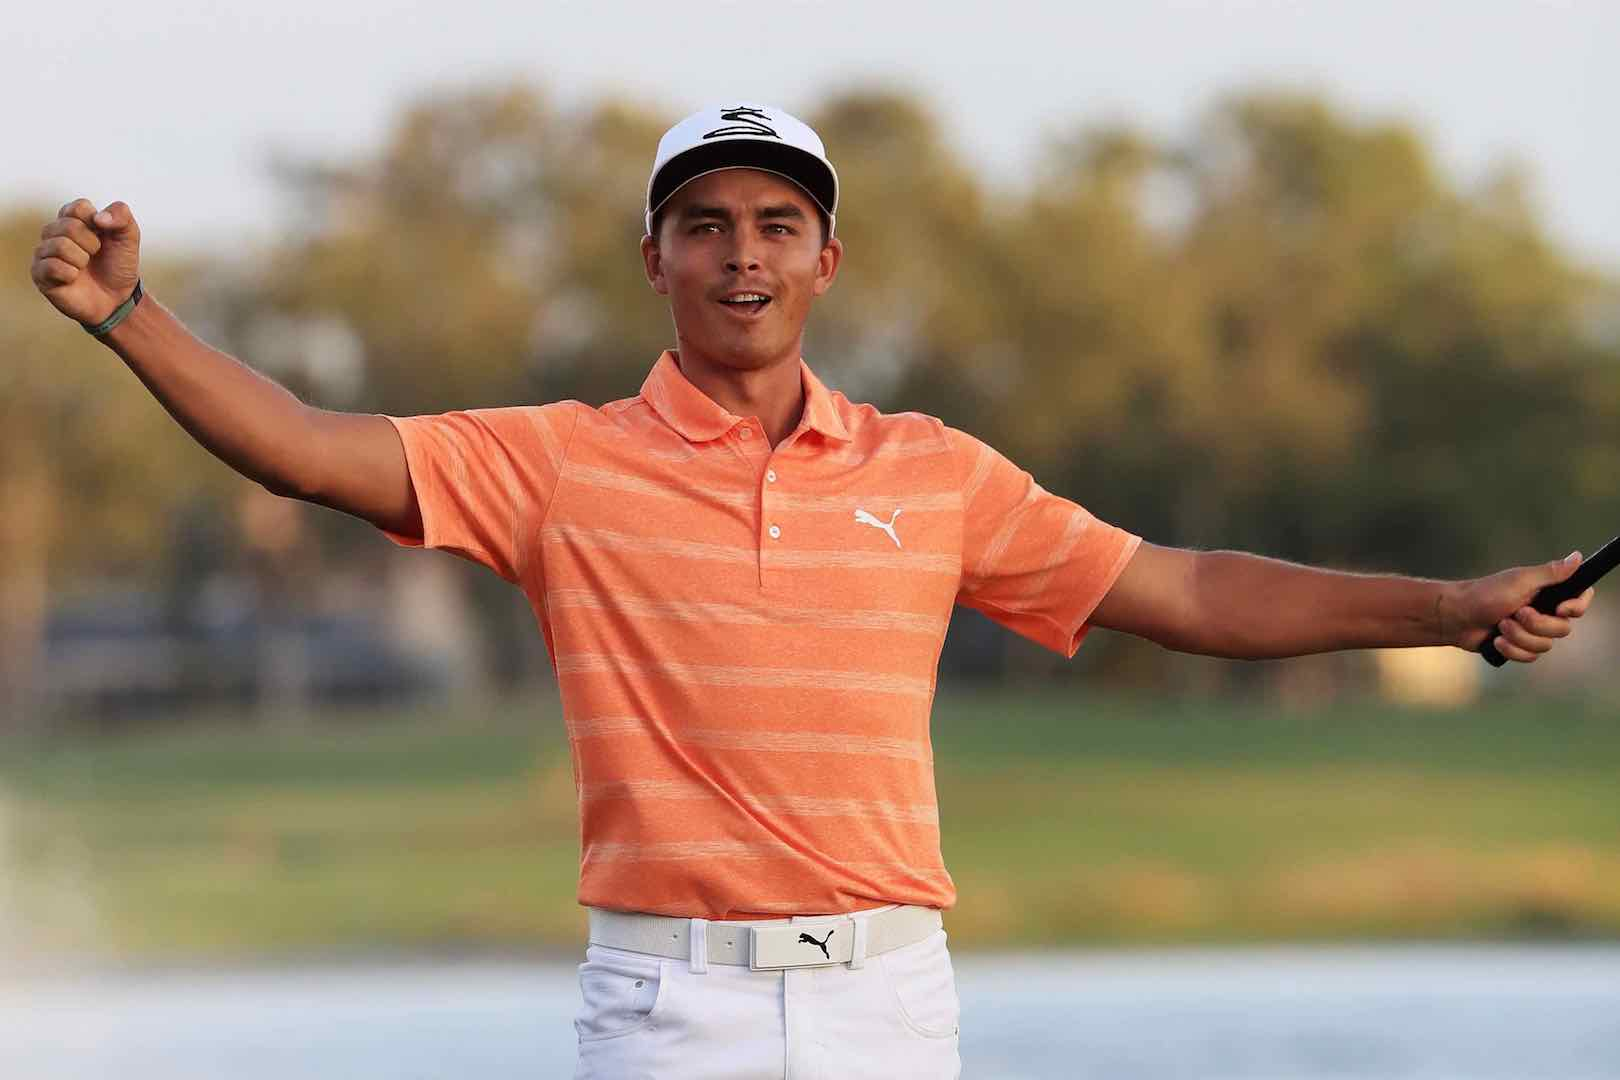 Rickie Fowler and Justin Thomas have putting competitions with Tiger Woods